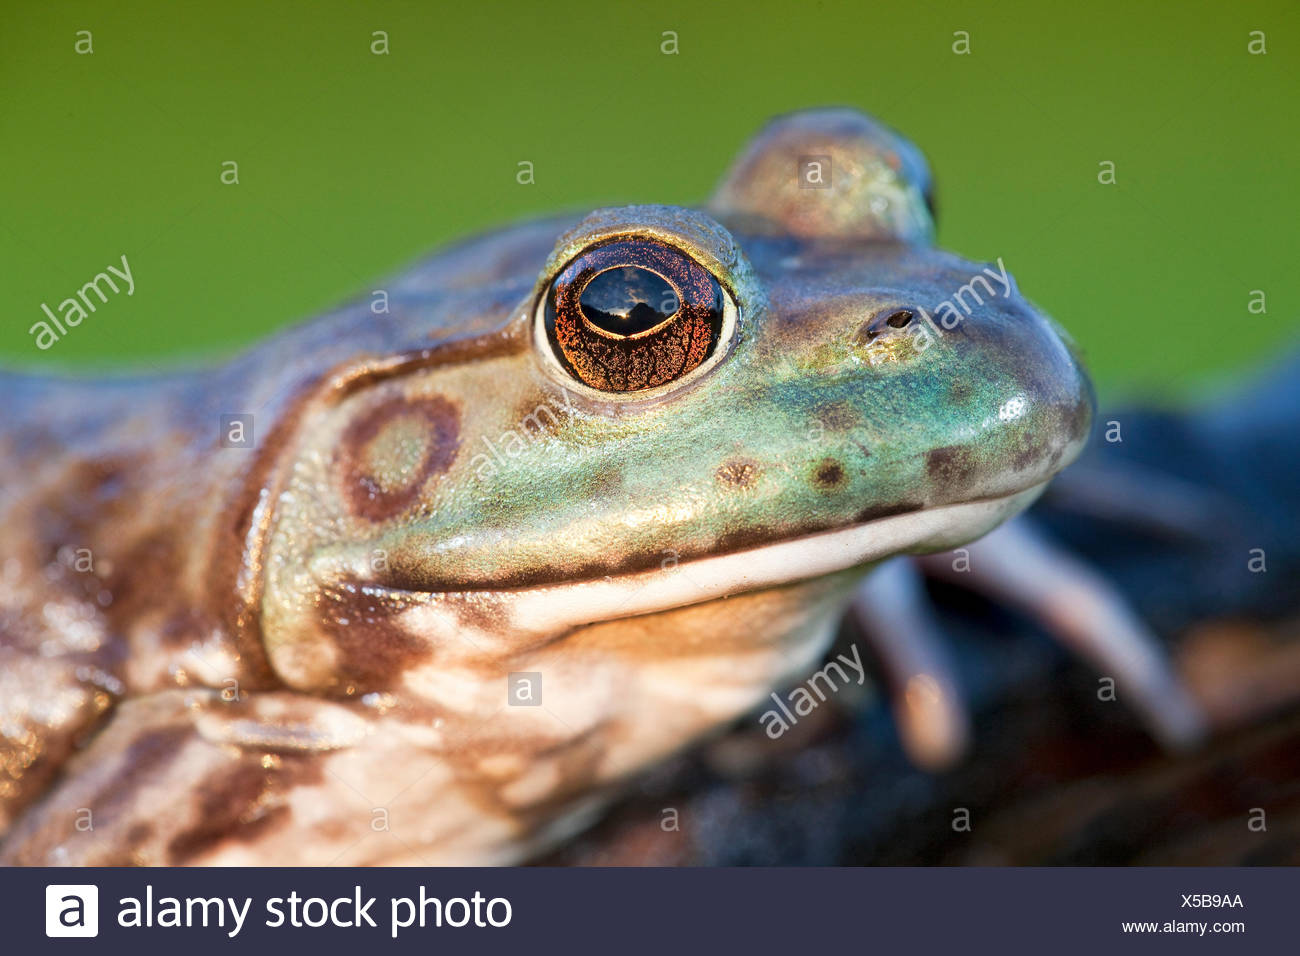 portret of a North American Bullfrog - Stock Image